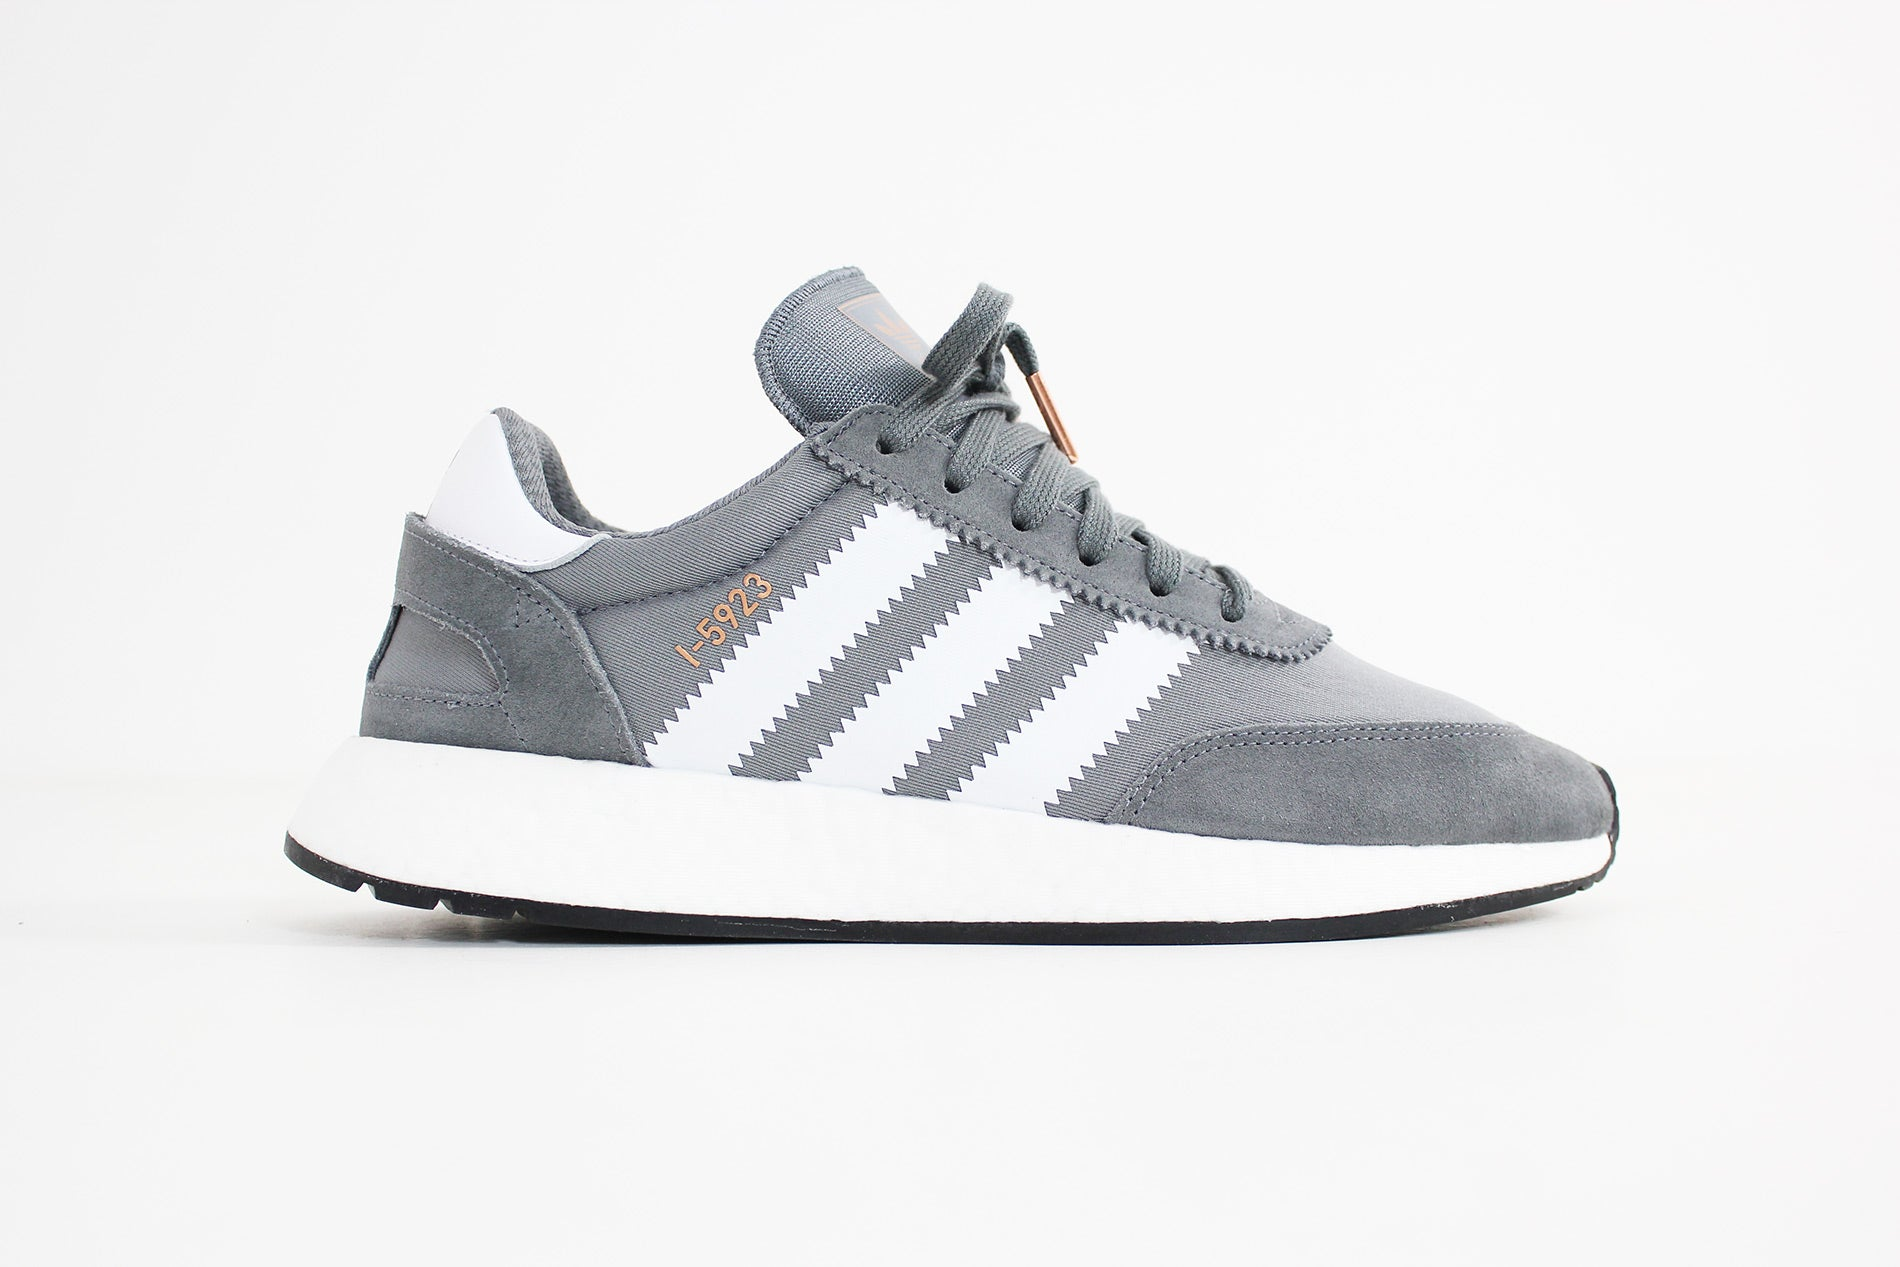 Adidas -  I-5923 (Vista Grey/ Ftwr White/ Core Black) BB2089